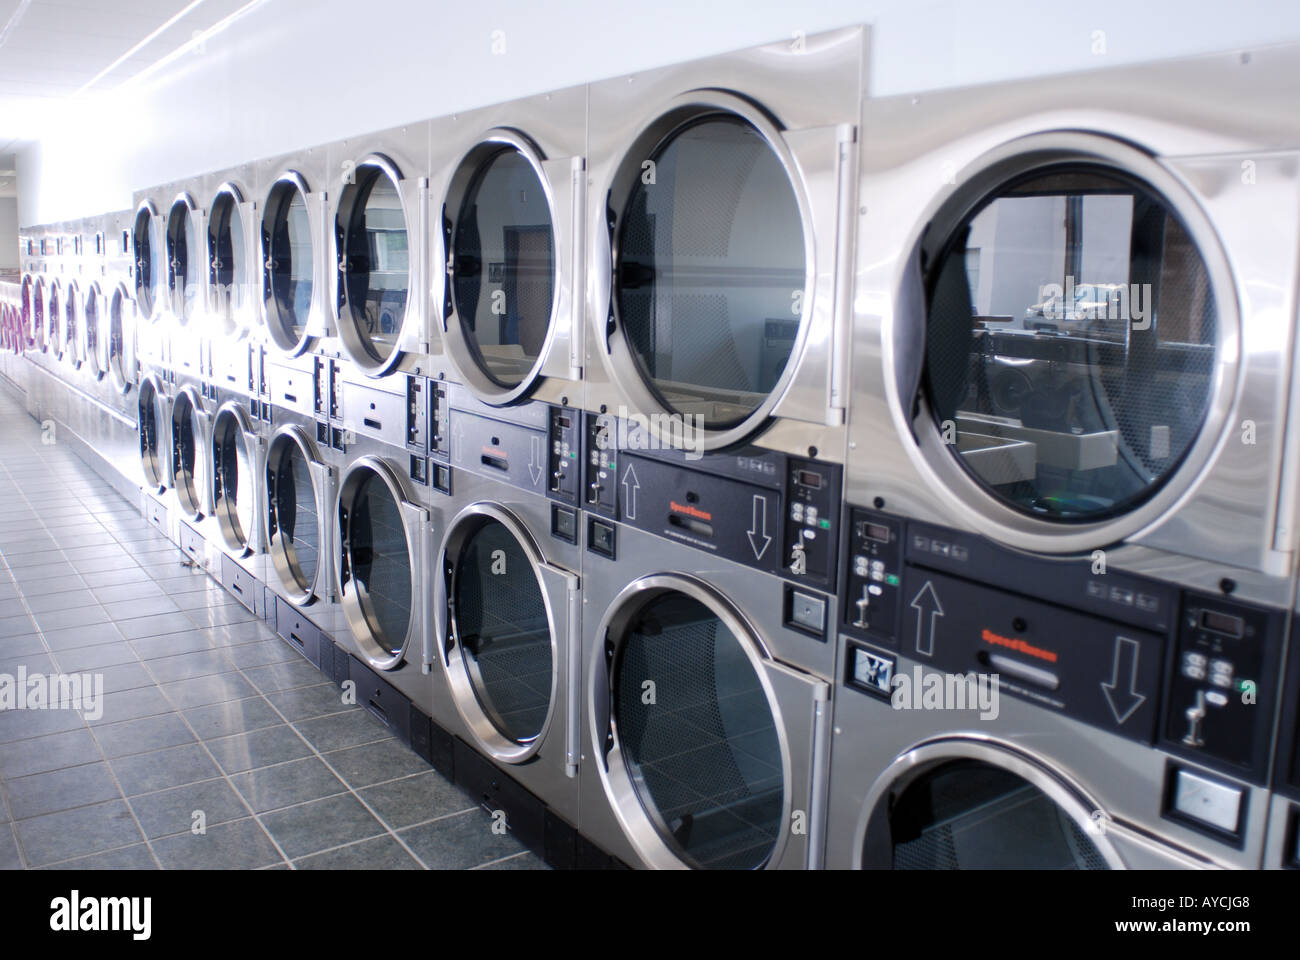 Rows of Brand New Coin Operated Laundry Dryers in new